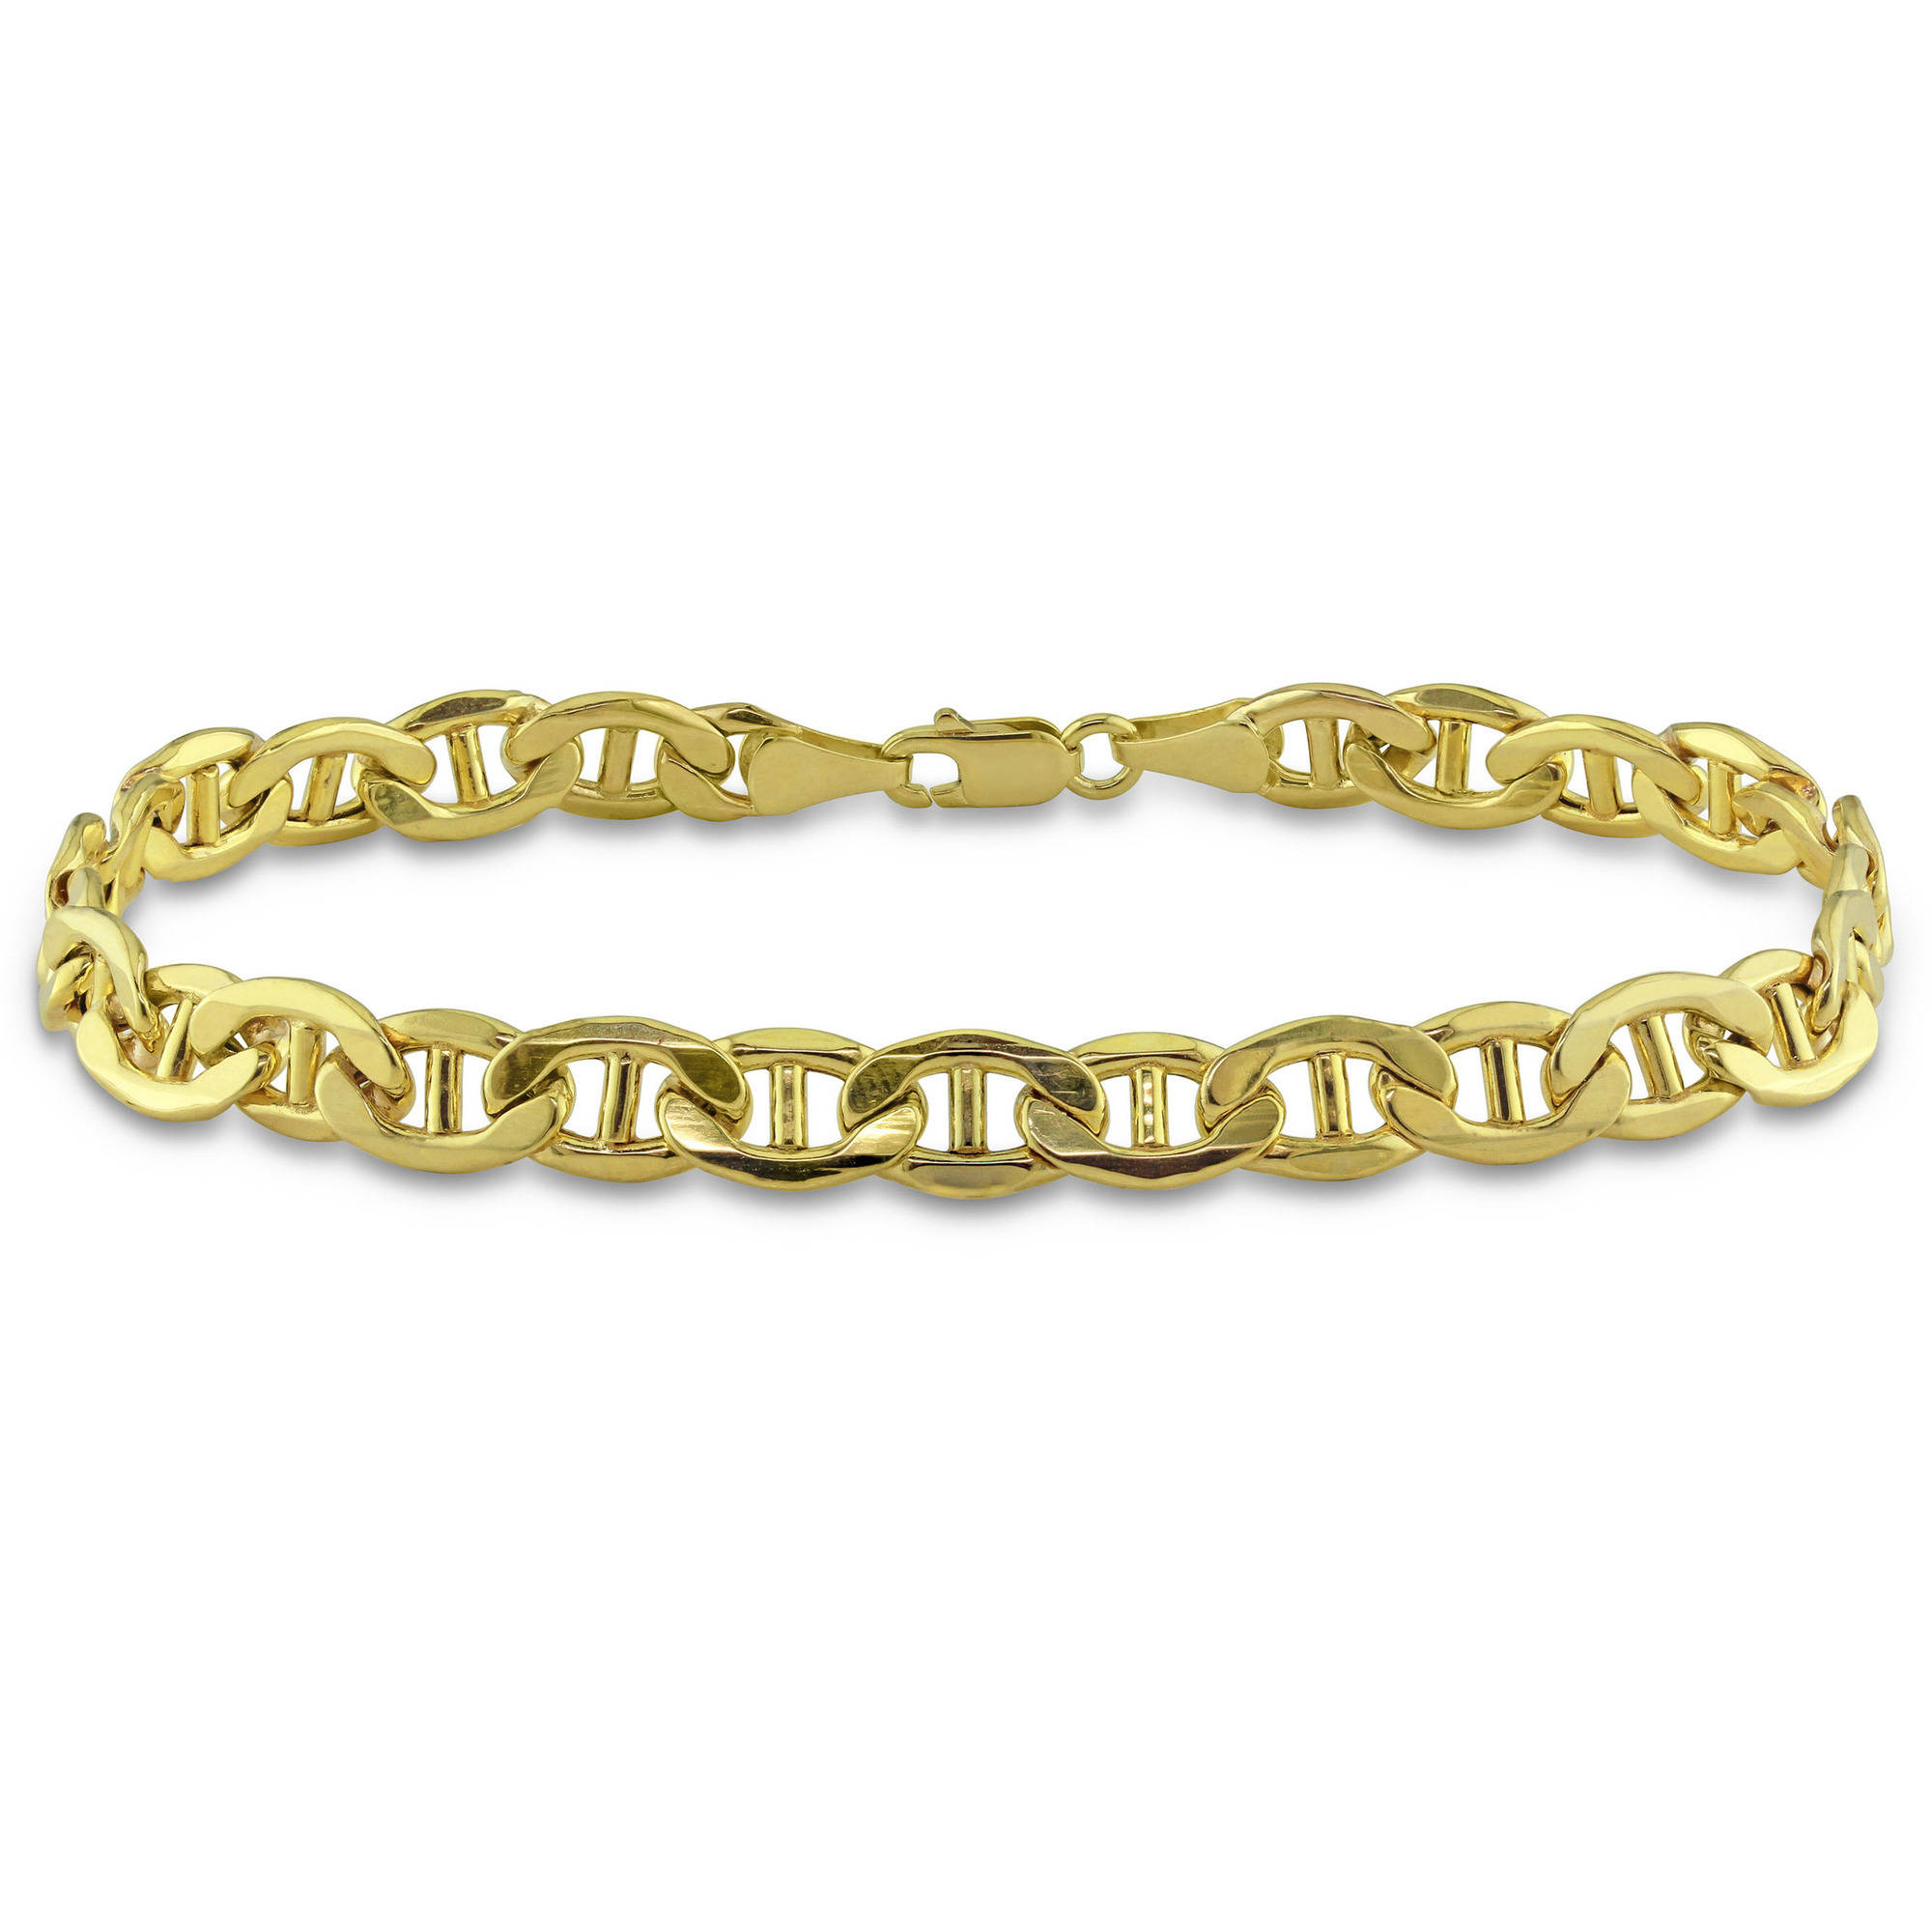 "Asteria Men's 10kt Yellow Gold Mariner Bracelet, 9"" by Delmar Manufacturing LLC"